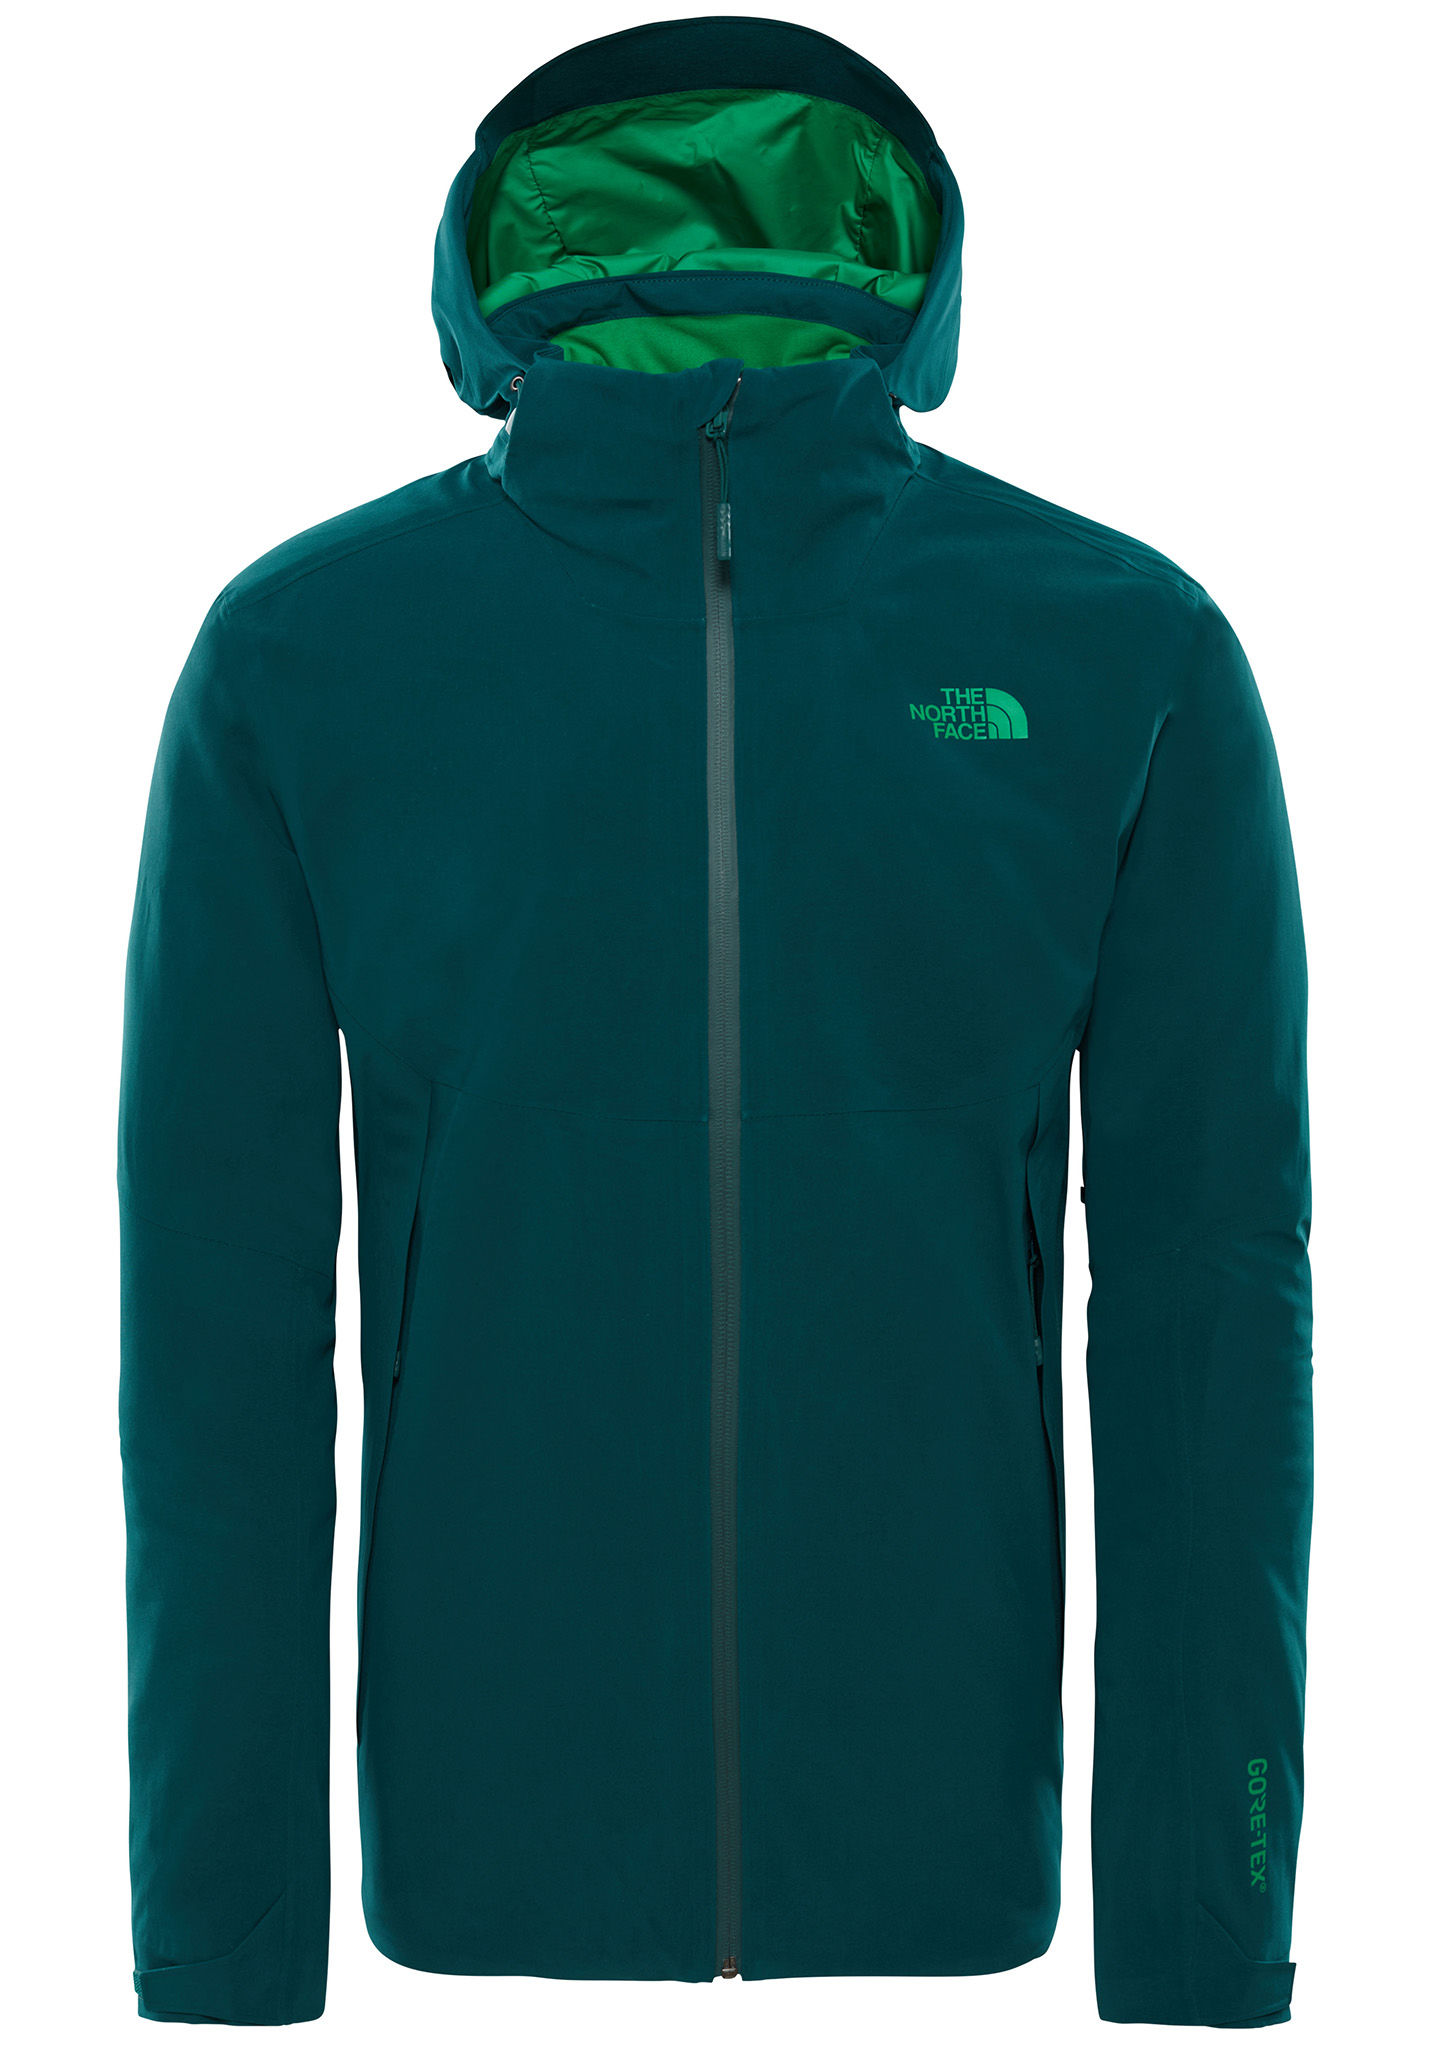 THE NORTH FACE Thermo Apex Flex GTX - Giacca outdoor per Uomo - Verde -  Planet Sports 154328eb234